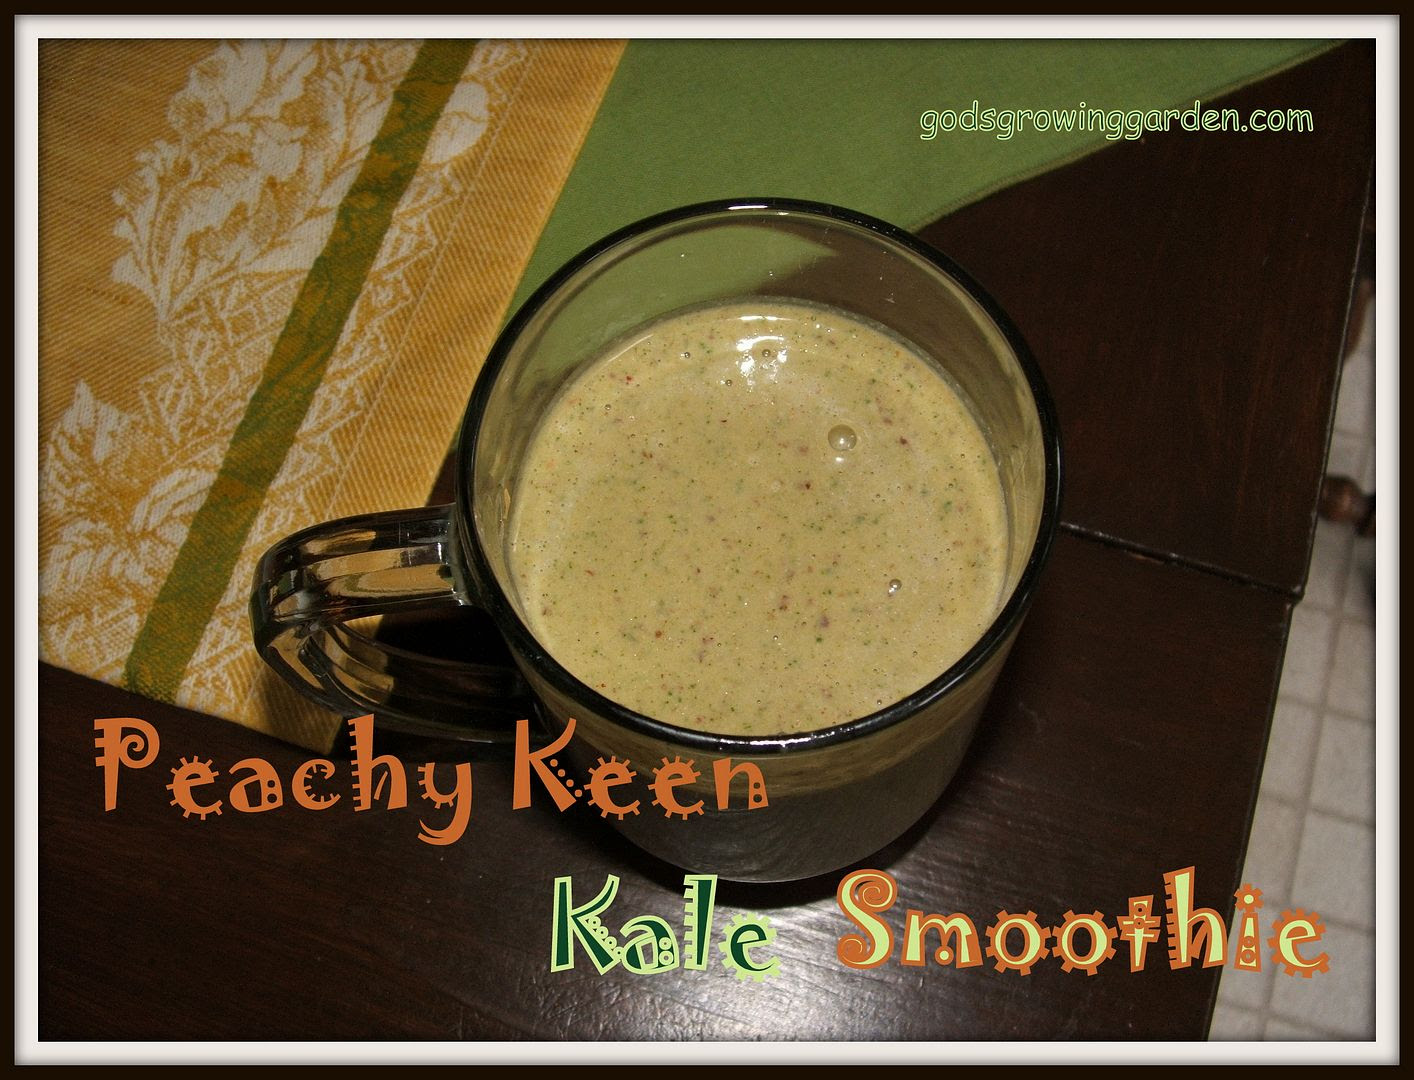 Peachy Keen Kale Smoothie by Angie Ouellette-Tower for godsgrowinggarden.com photo 015-4_zps7a7efec5.jpg